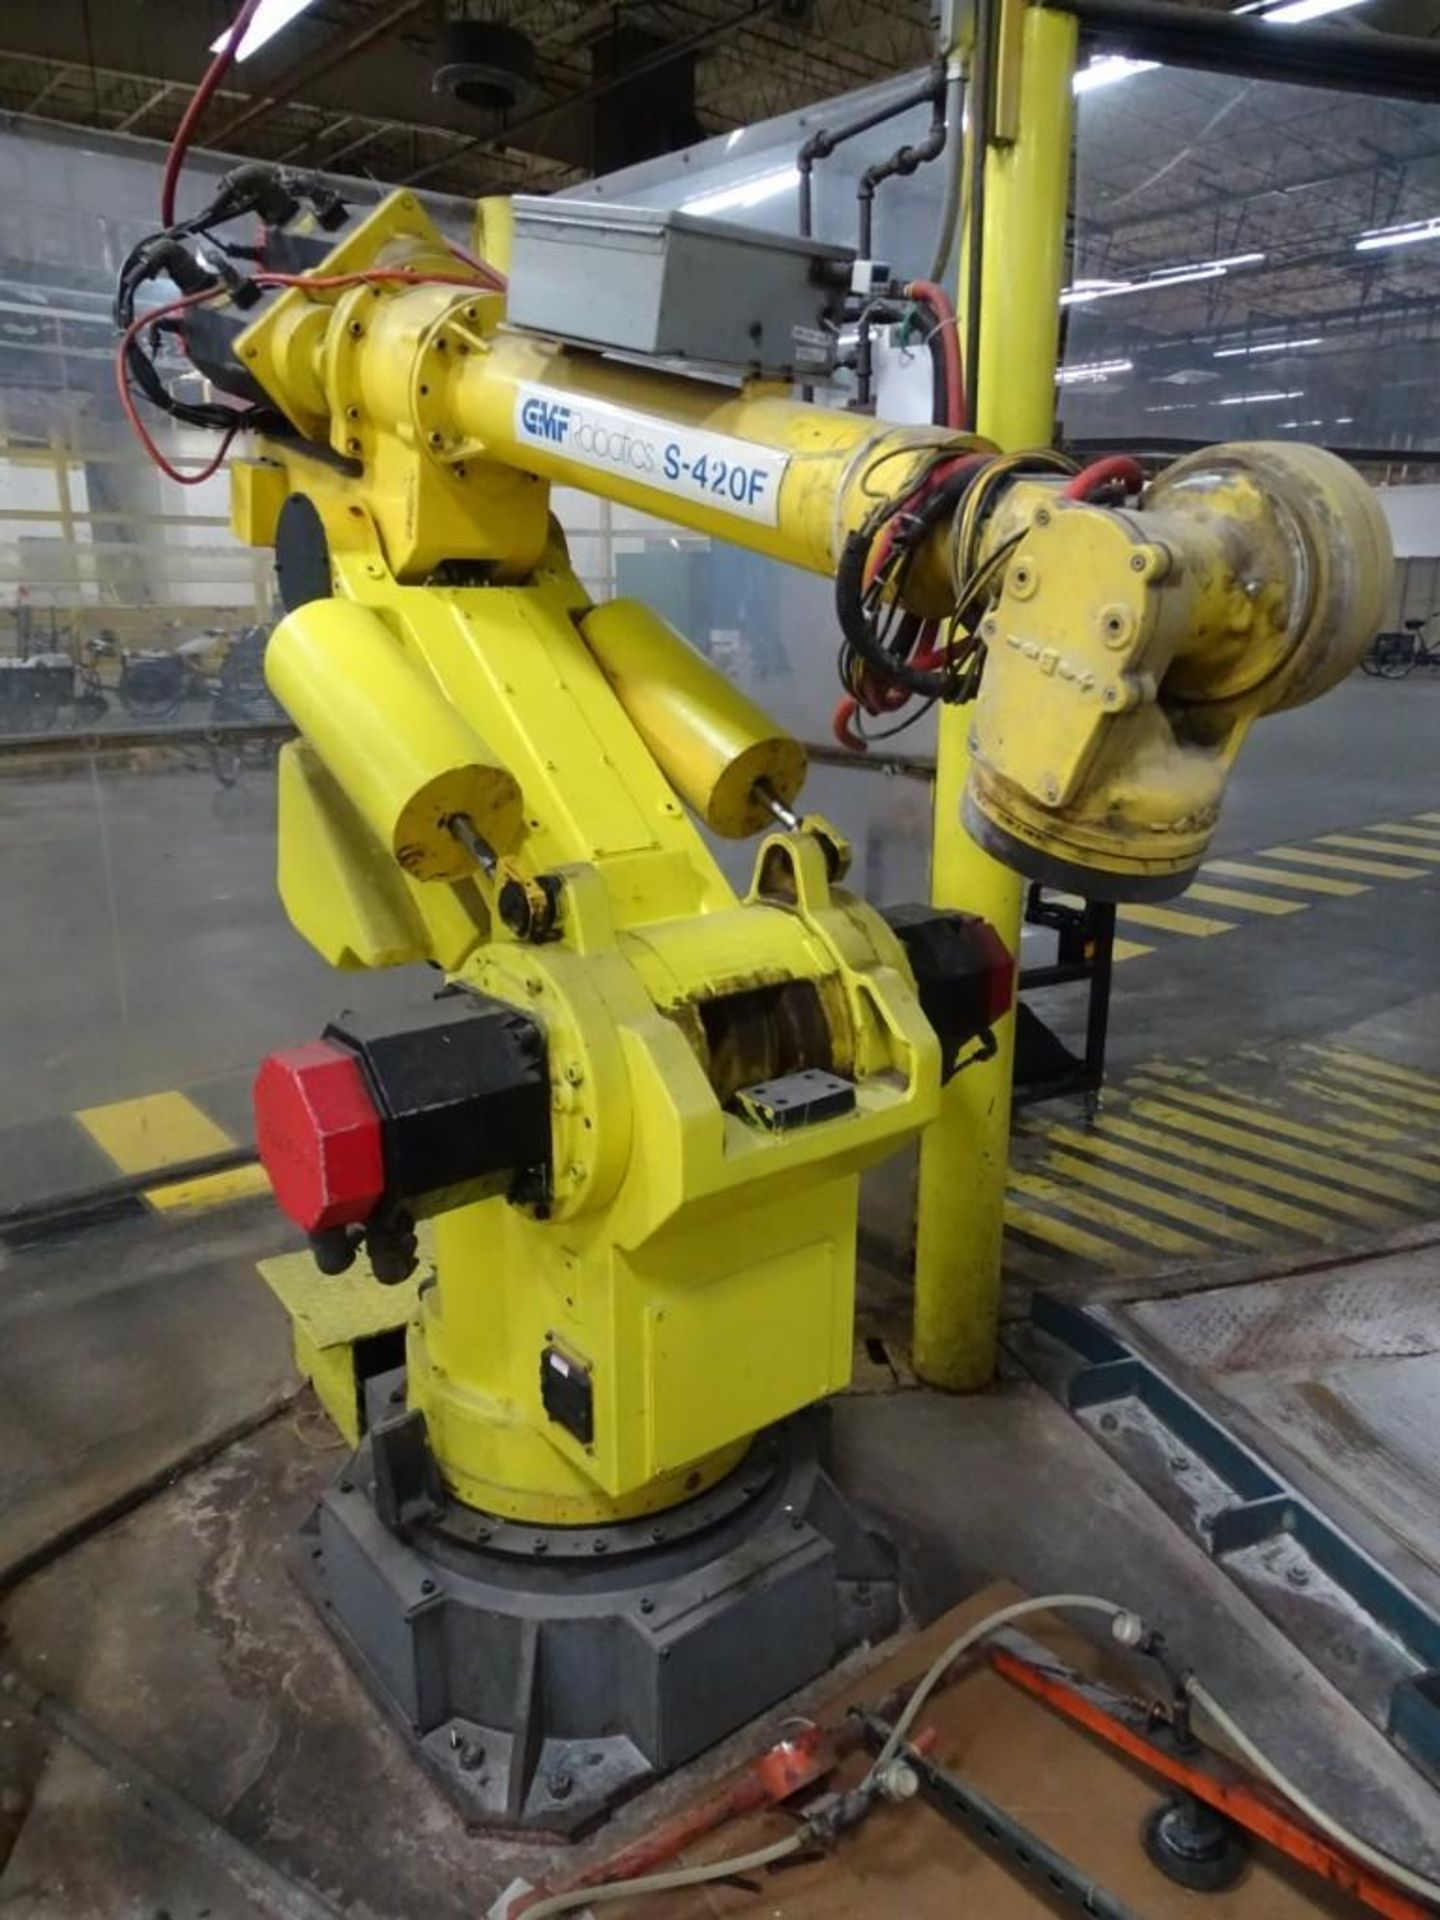 Fanuc S-420F Robotic Arm with Teach Pendant and Controls - Image 2 of 8